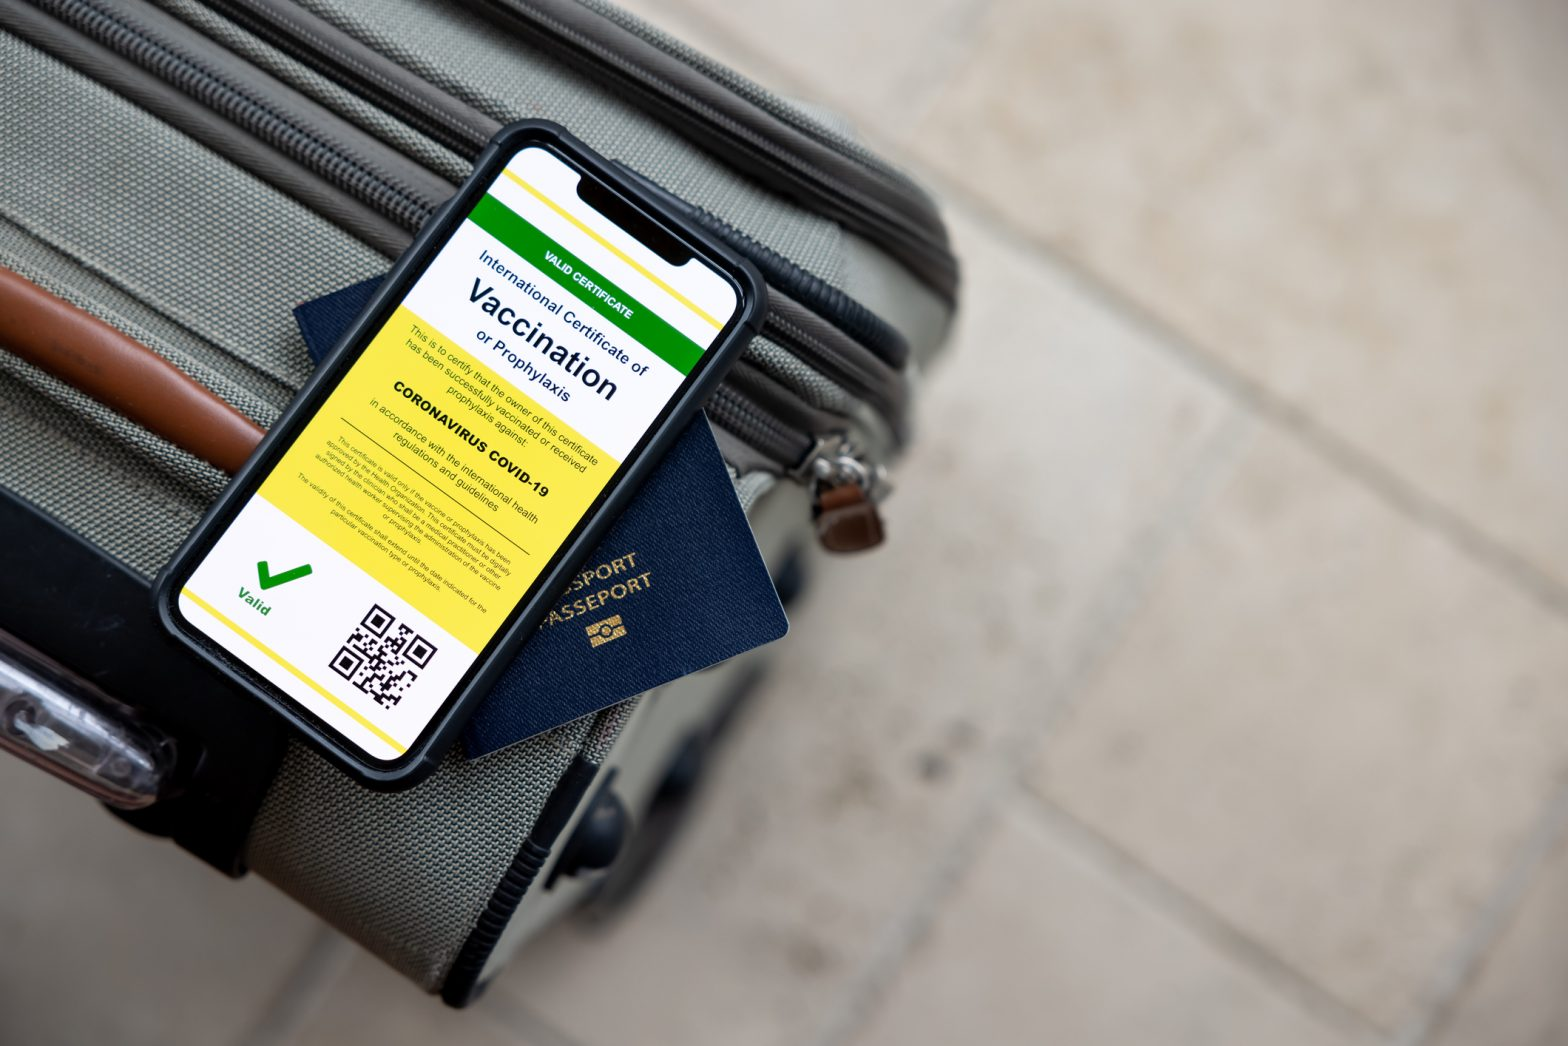 Digital vaccine passport app in mobile phone for travel during Covid-19 pandemic